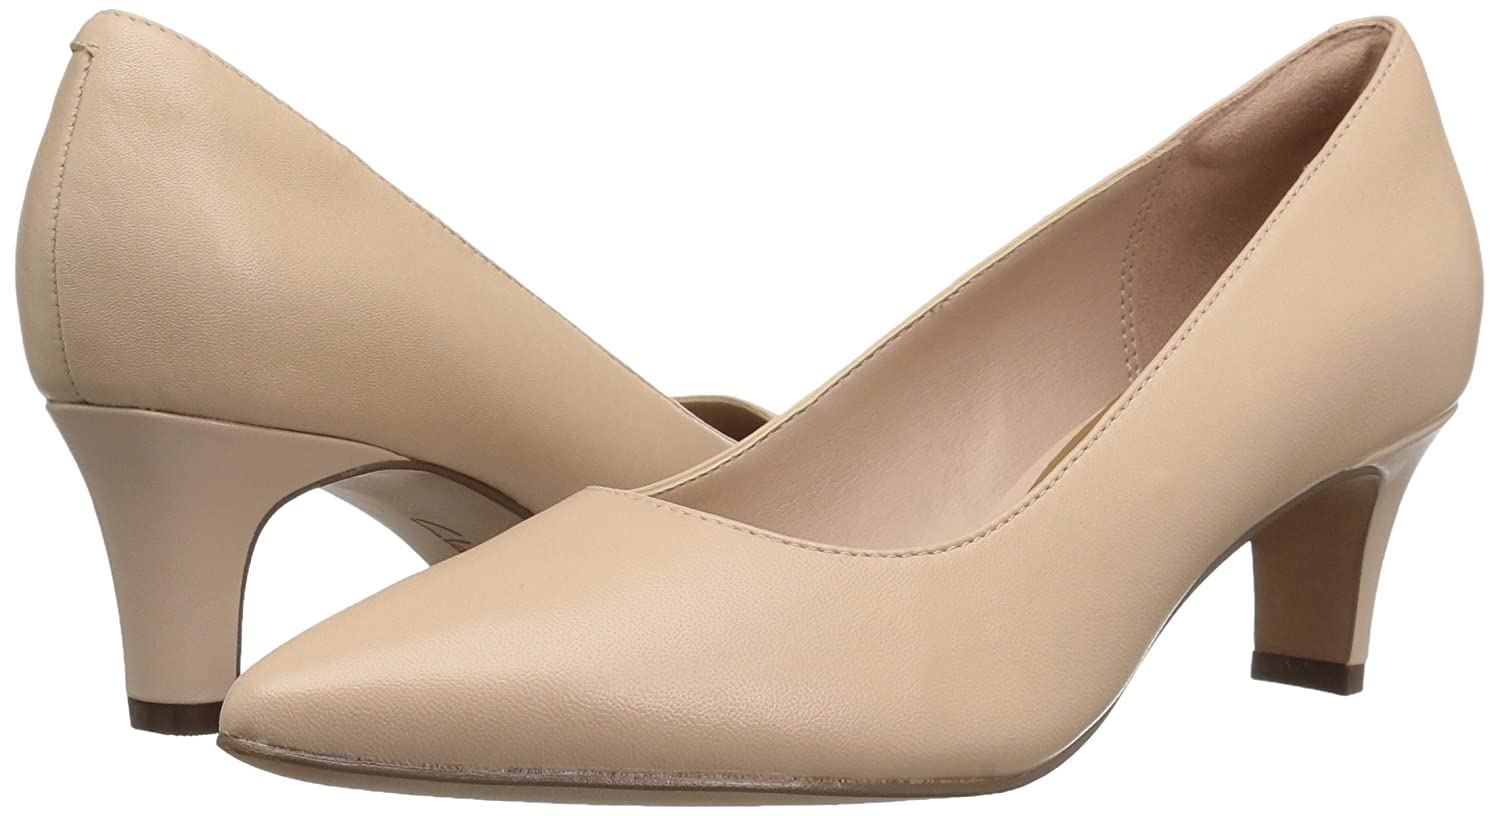 CLARKS Women's Crewso Wick Dress Pump B01IAV43R6 12 M US|Nude Pink Leather